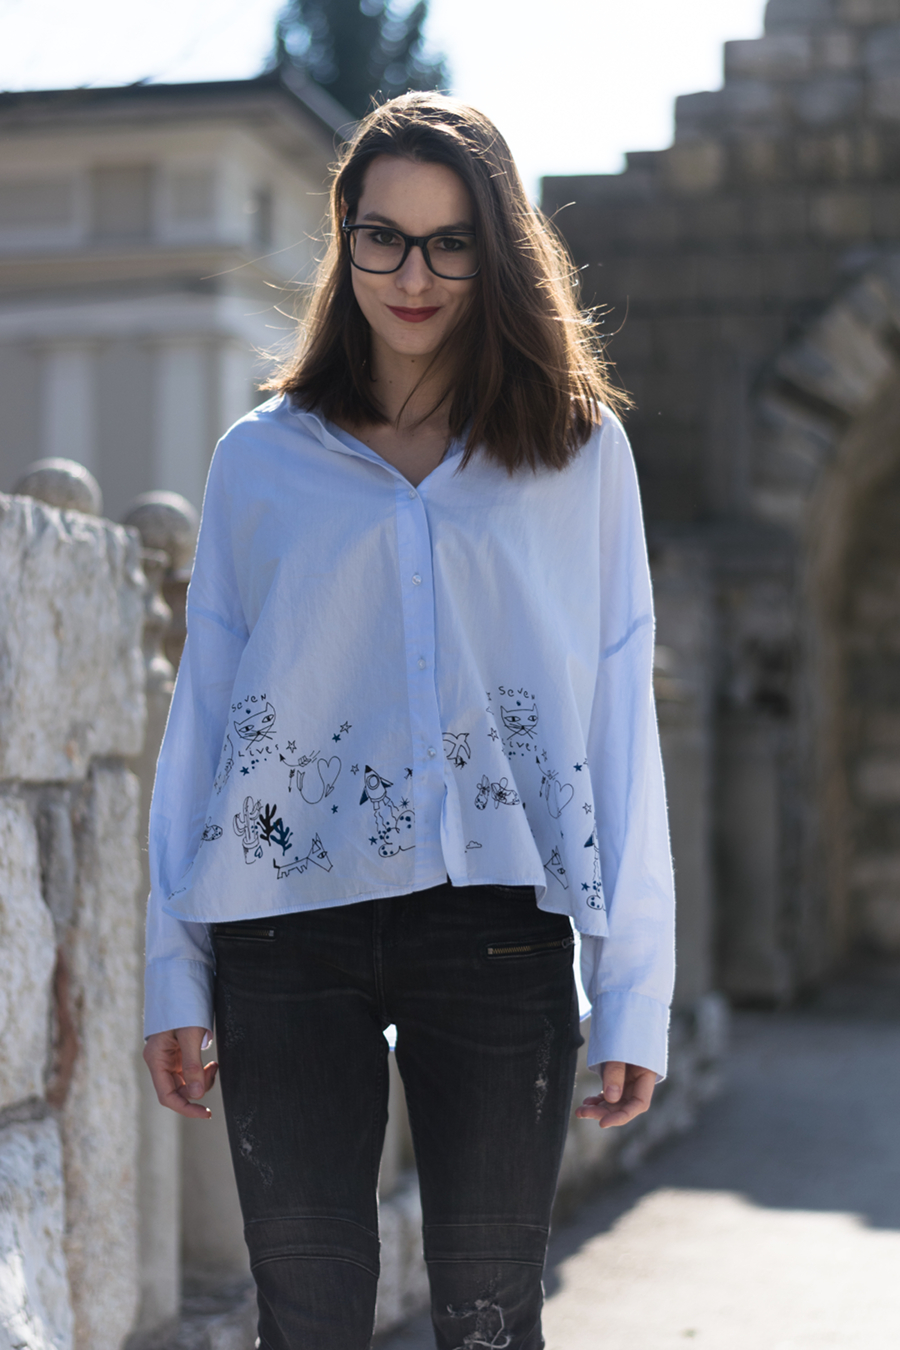 Chic spring outfit with a unique shirt, styled by a fashion blogger Fash 'n' fudge.